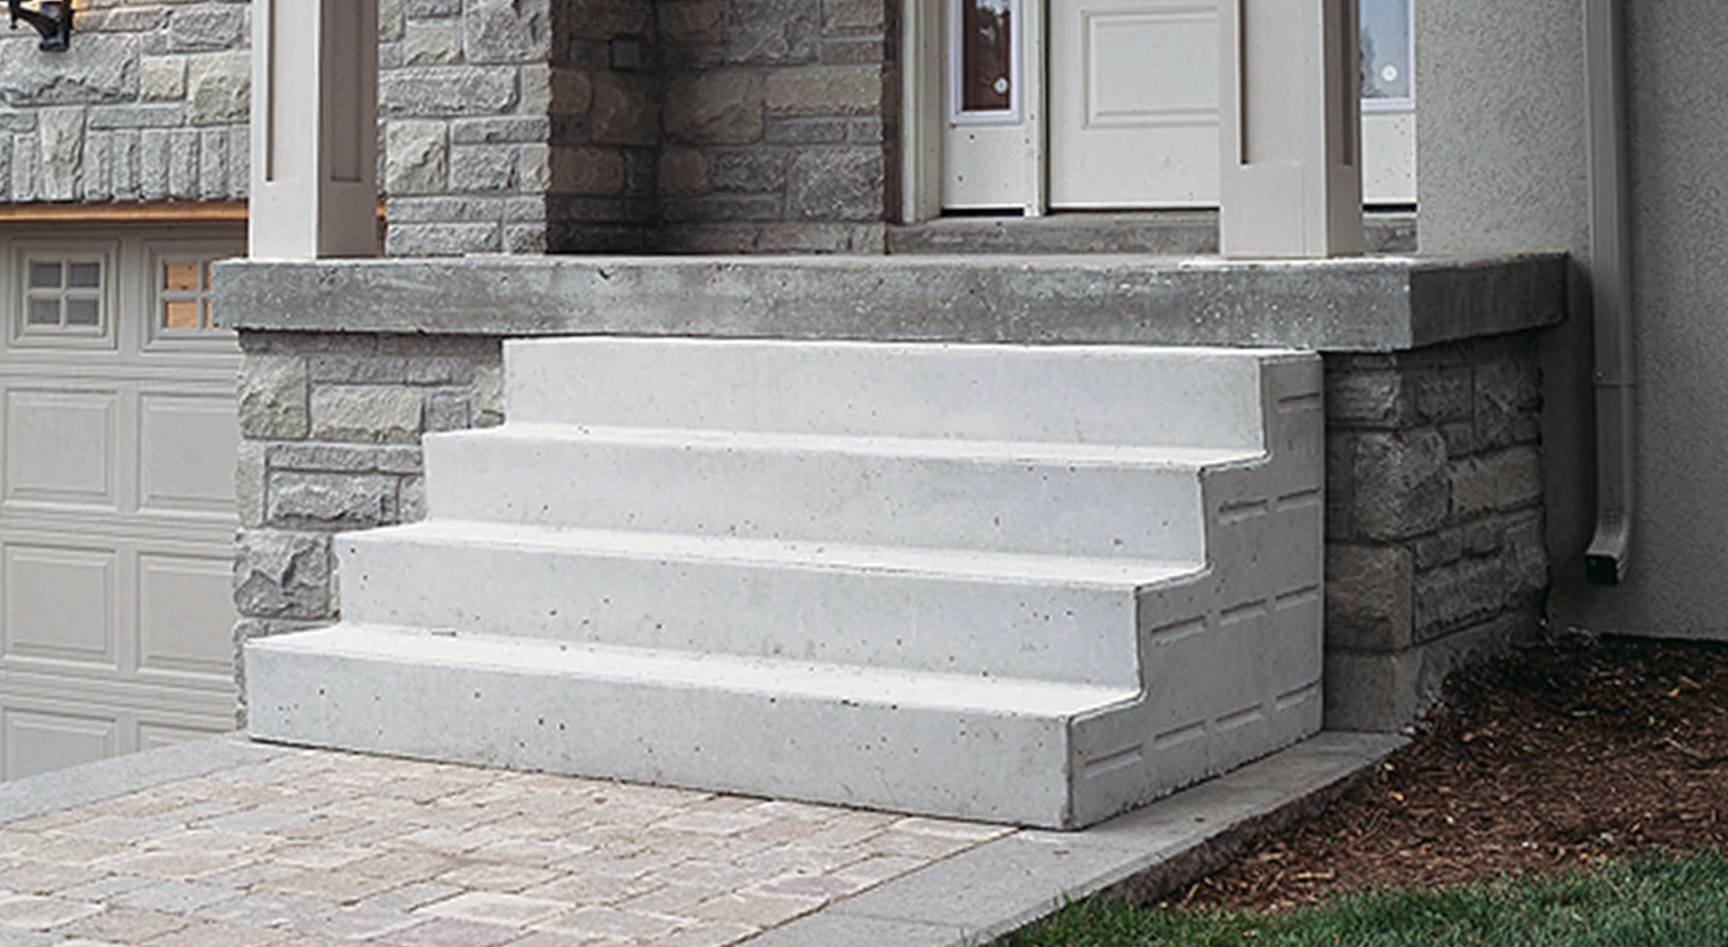 concrete stairs in a private house